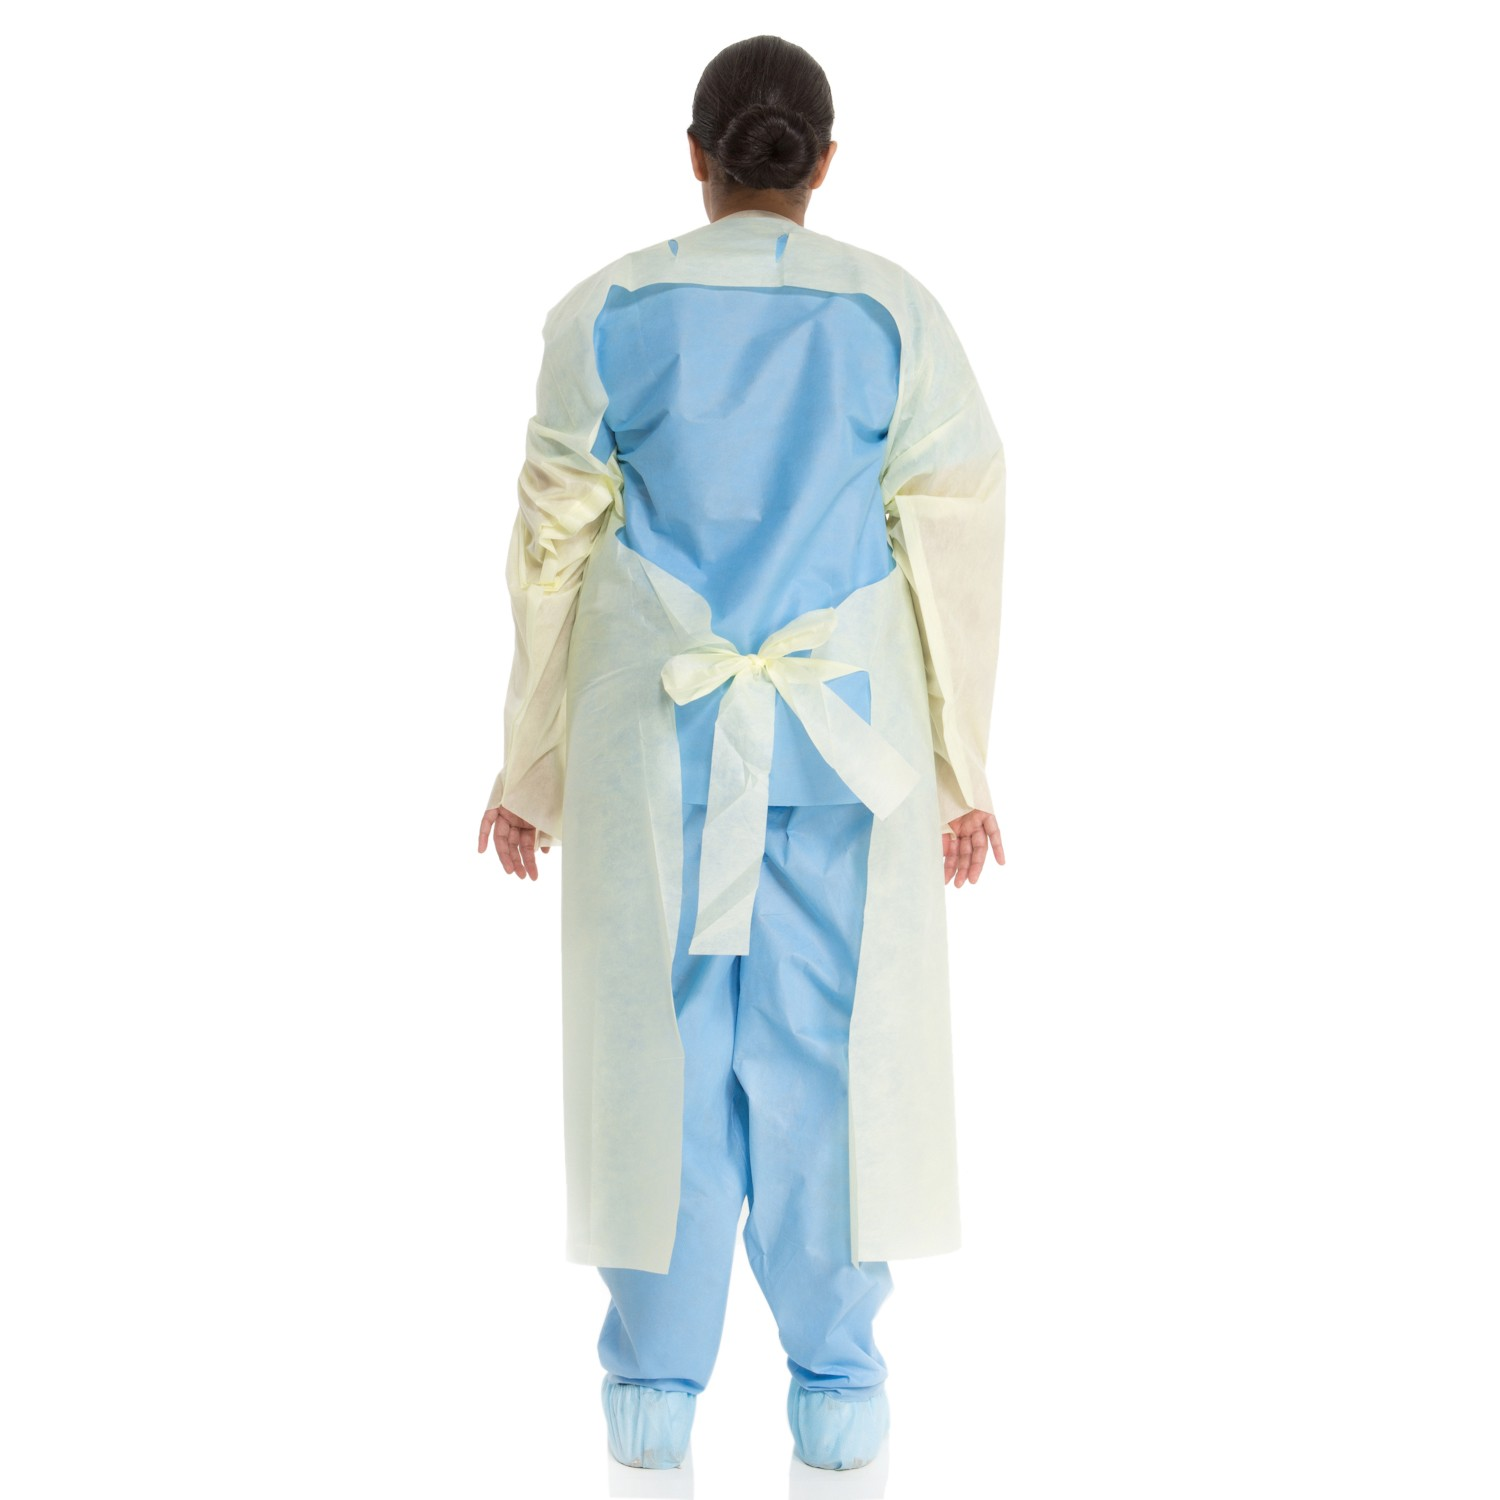 HALYARD Tri-Layer Over-the-Head Isolation Gowns | Halyard Health